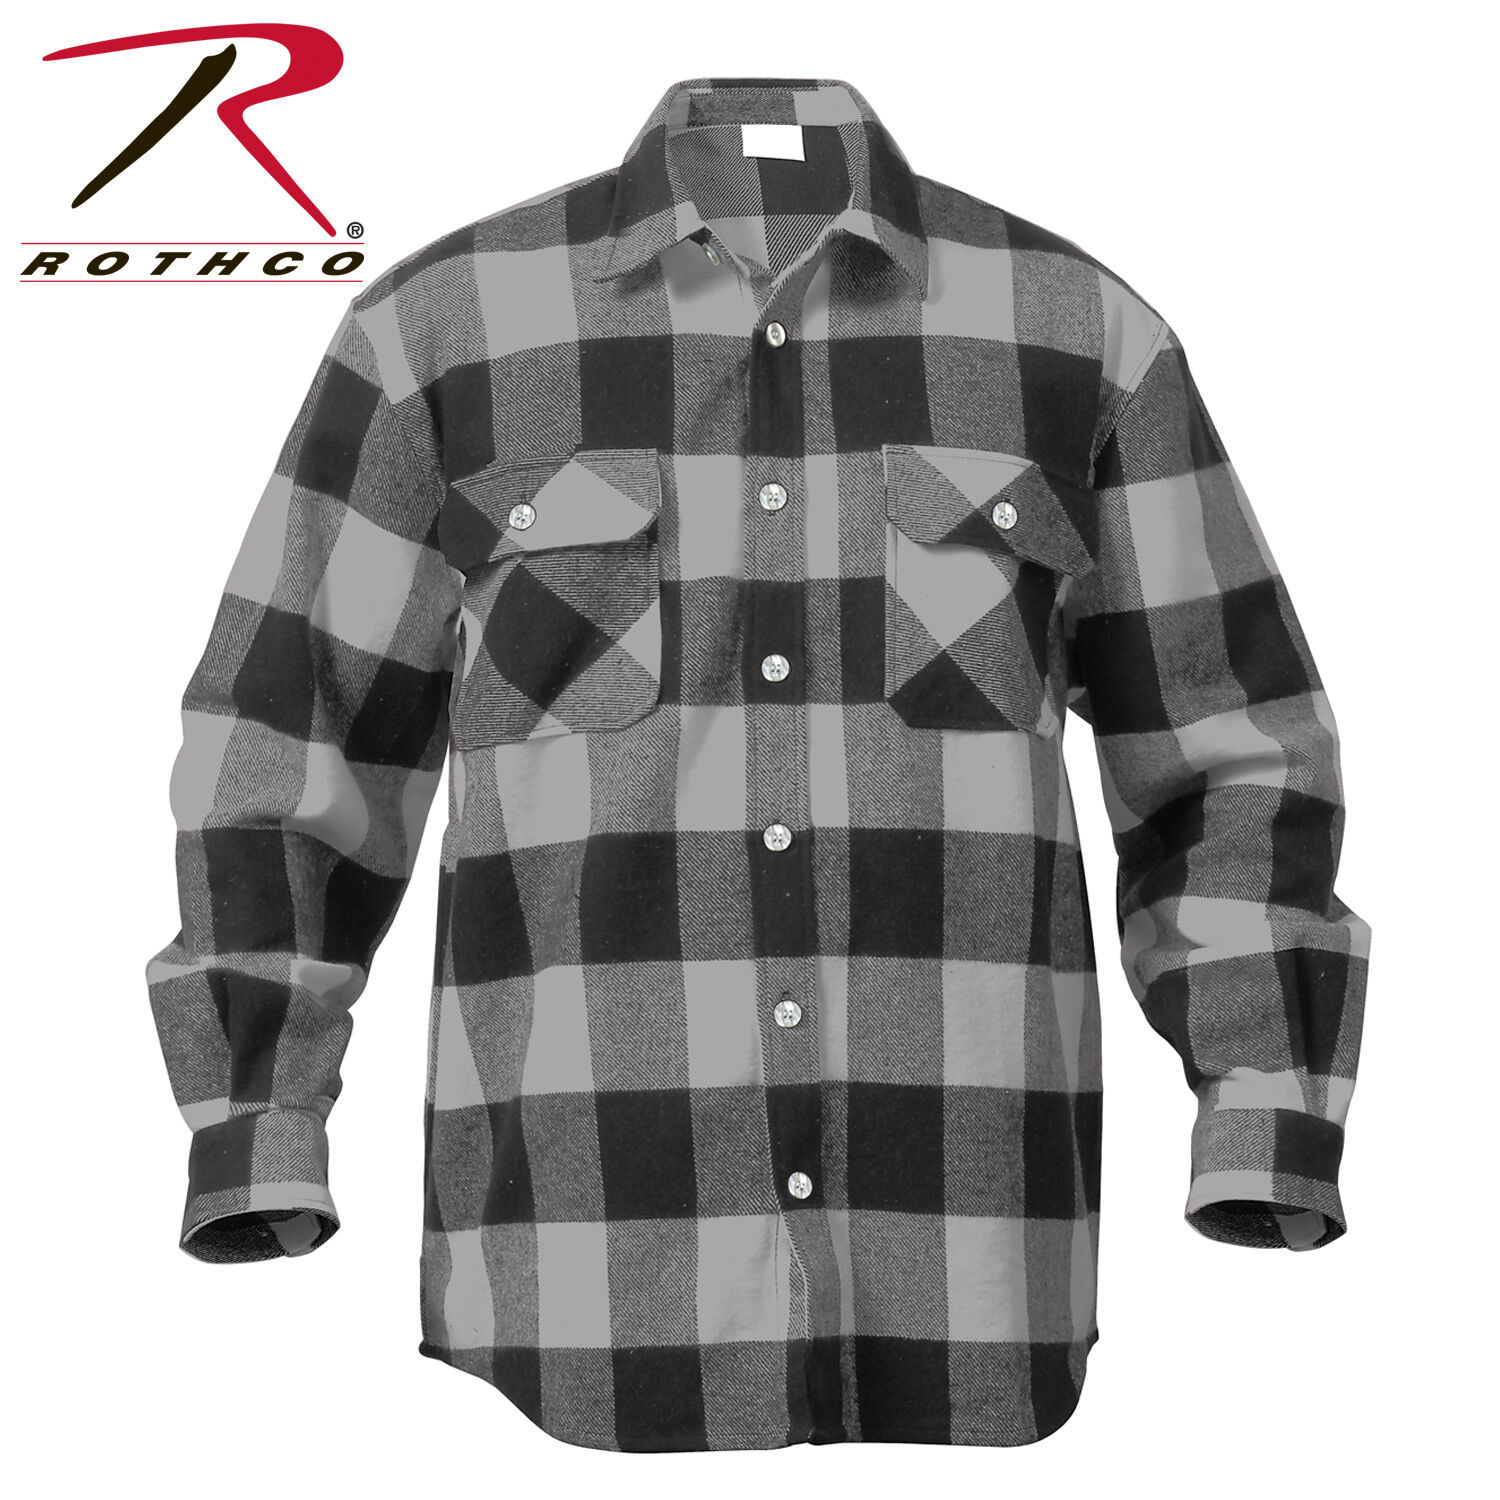 4335ba0ee5a redhco 4690 Extra Heavyweight Buffalo Plaid Flannel Shirts - Grey Plaid. La  Martina Buenos Aires Shirt bluee Size ...